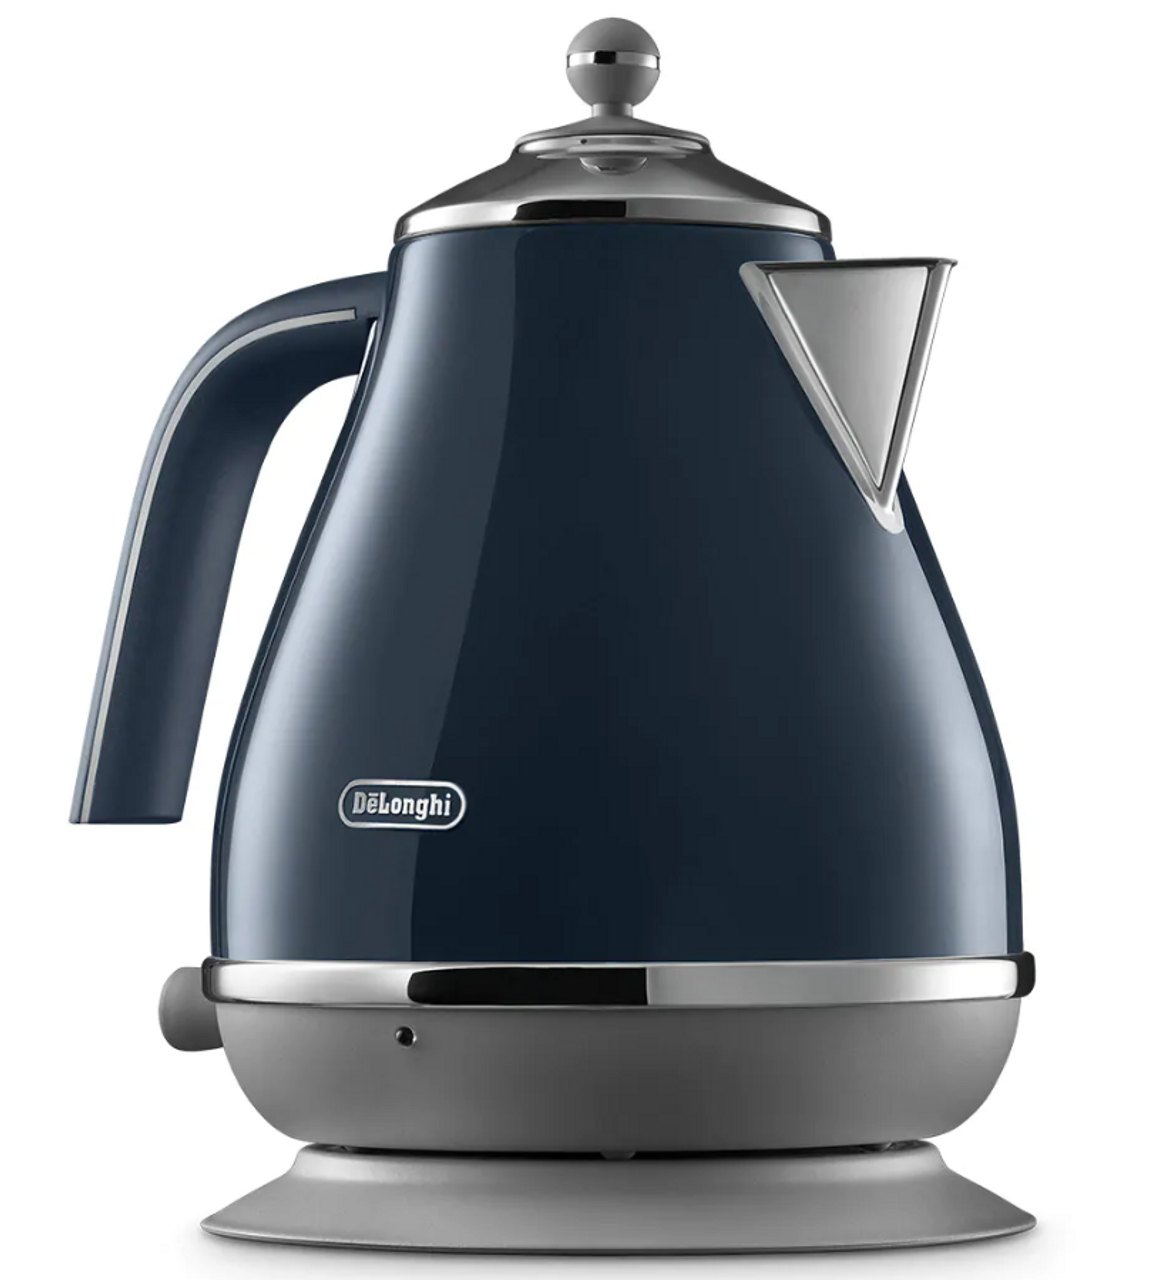 Delonghi CTOC2003BL KBOC2001BL Icona Capitals Toaster + Kettle PACK - London Blue